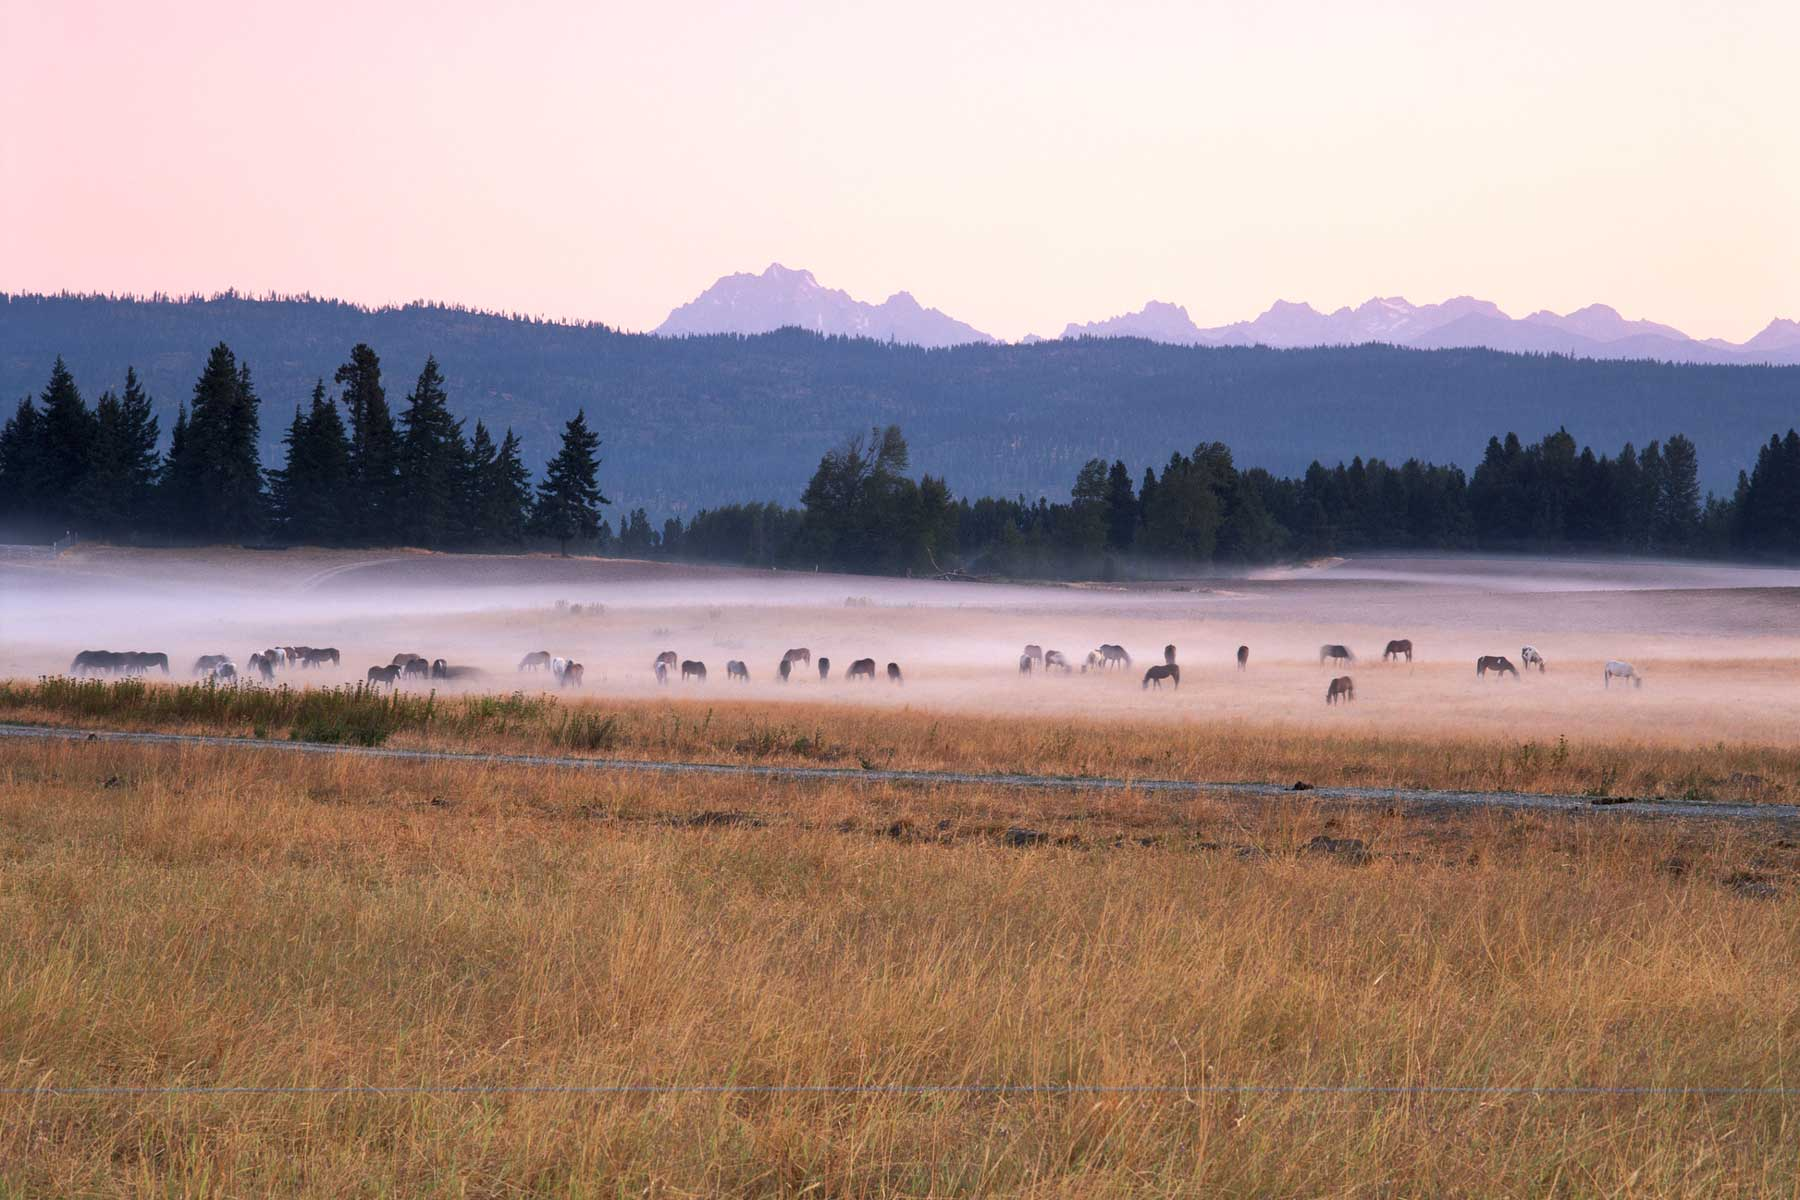 Horses grazing in dawn mist with the Cascade mountains in the background in Cle Elum, Washington